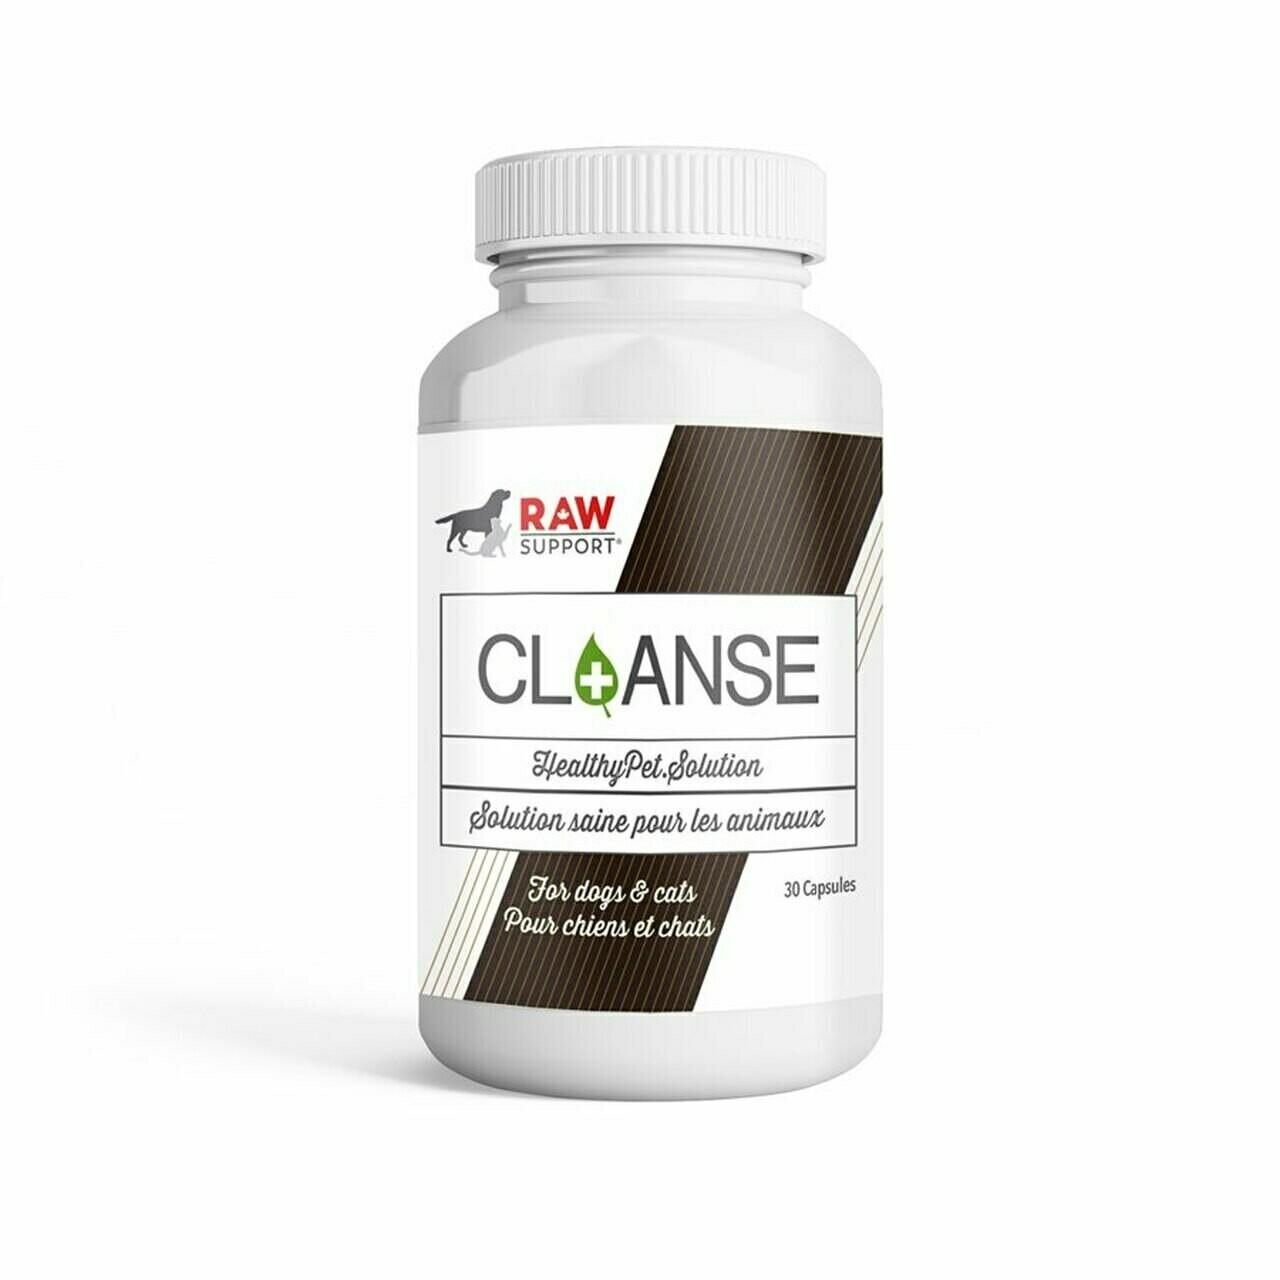 Raw Support CL+ANSE Pet Supplement, 30-count